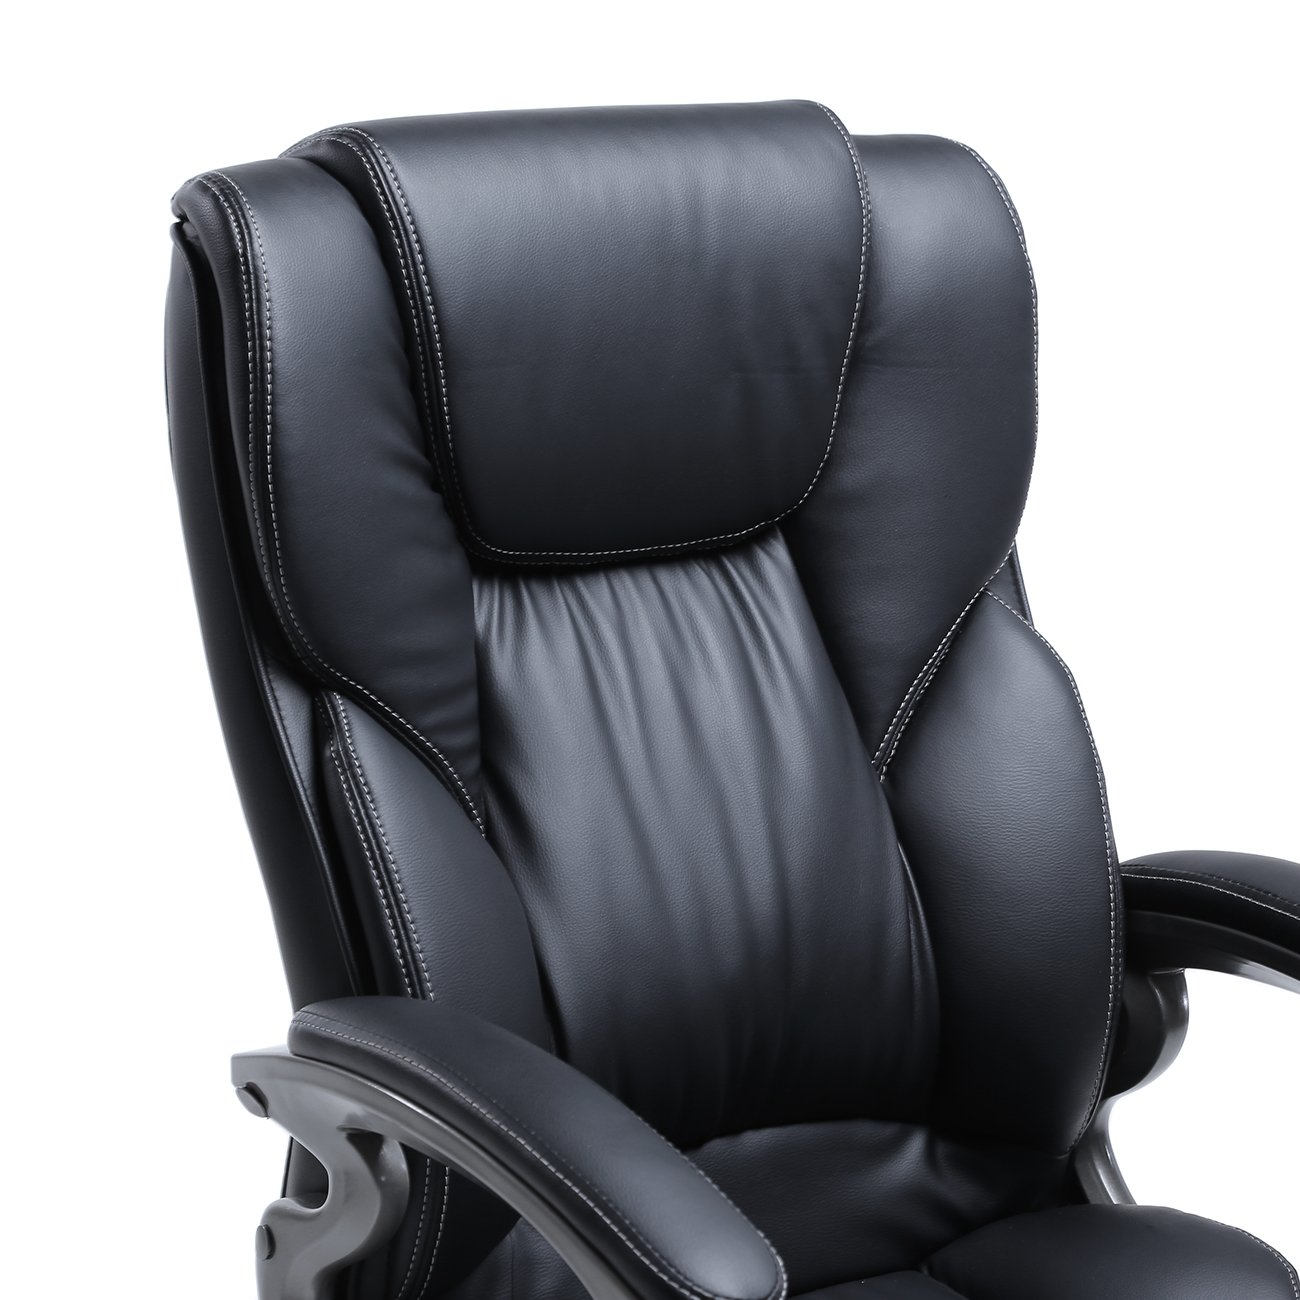 Ergonomic Chairs For Home Black Pu Leather High Back Office Chair Executive Task